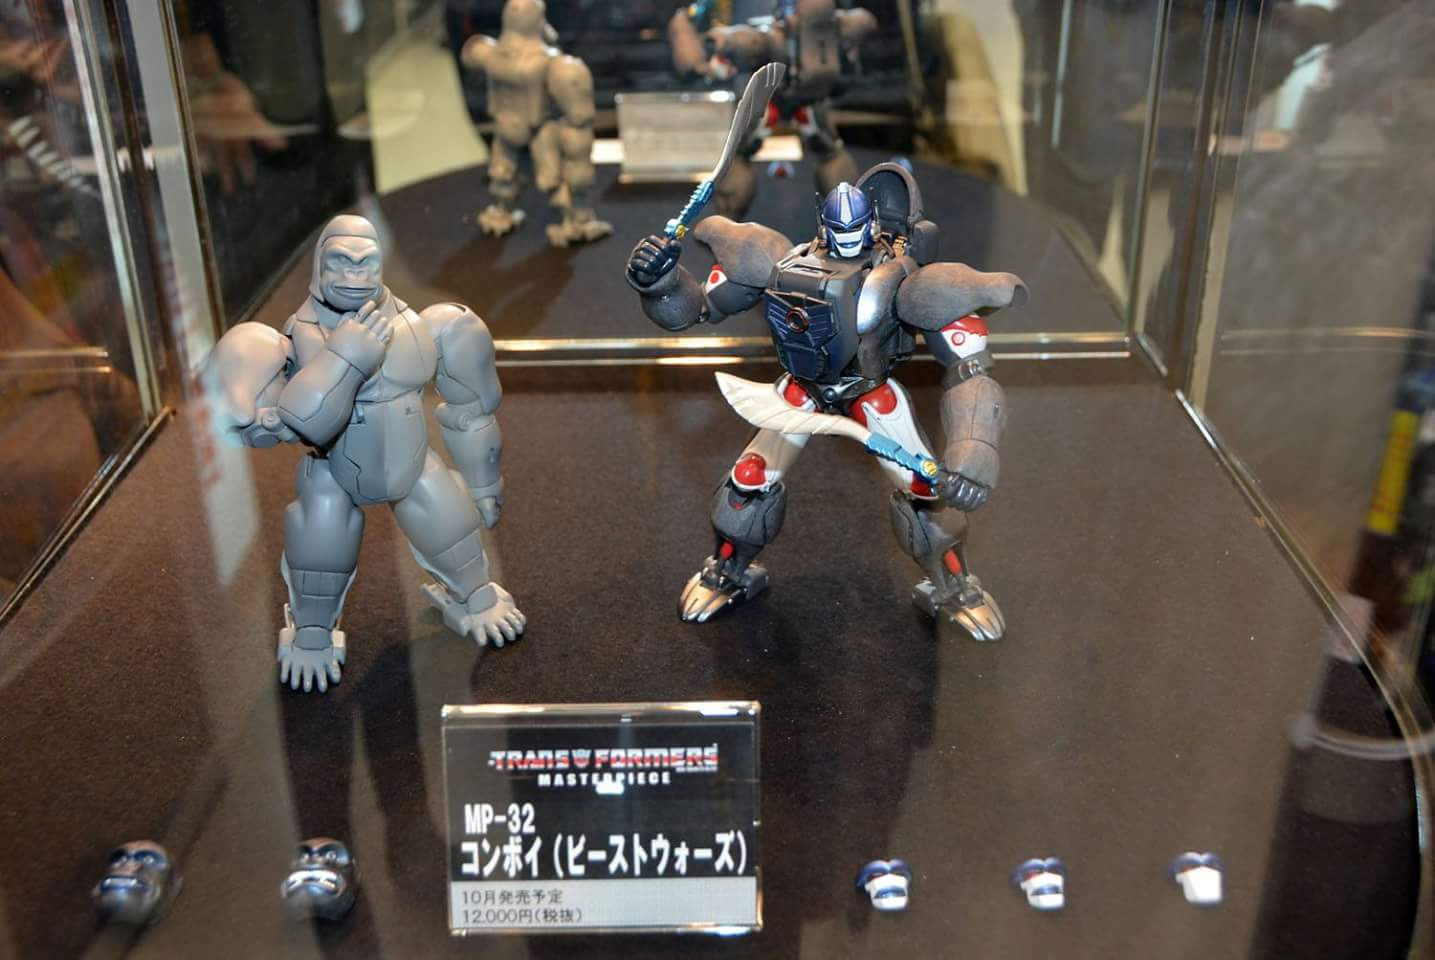 [Masterpiece] MP-32, MP-38 Optimus Primal et MP-38+ Burning Convoy (Beast Wars) - Page 2 KfXnqMcy